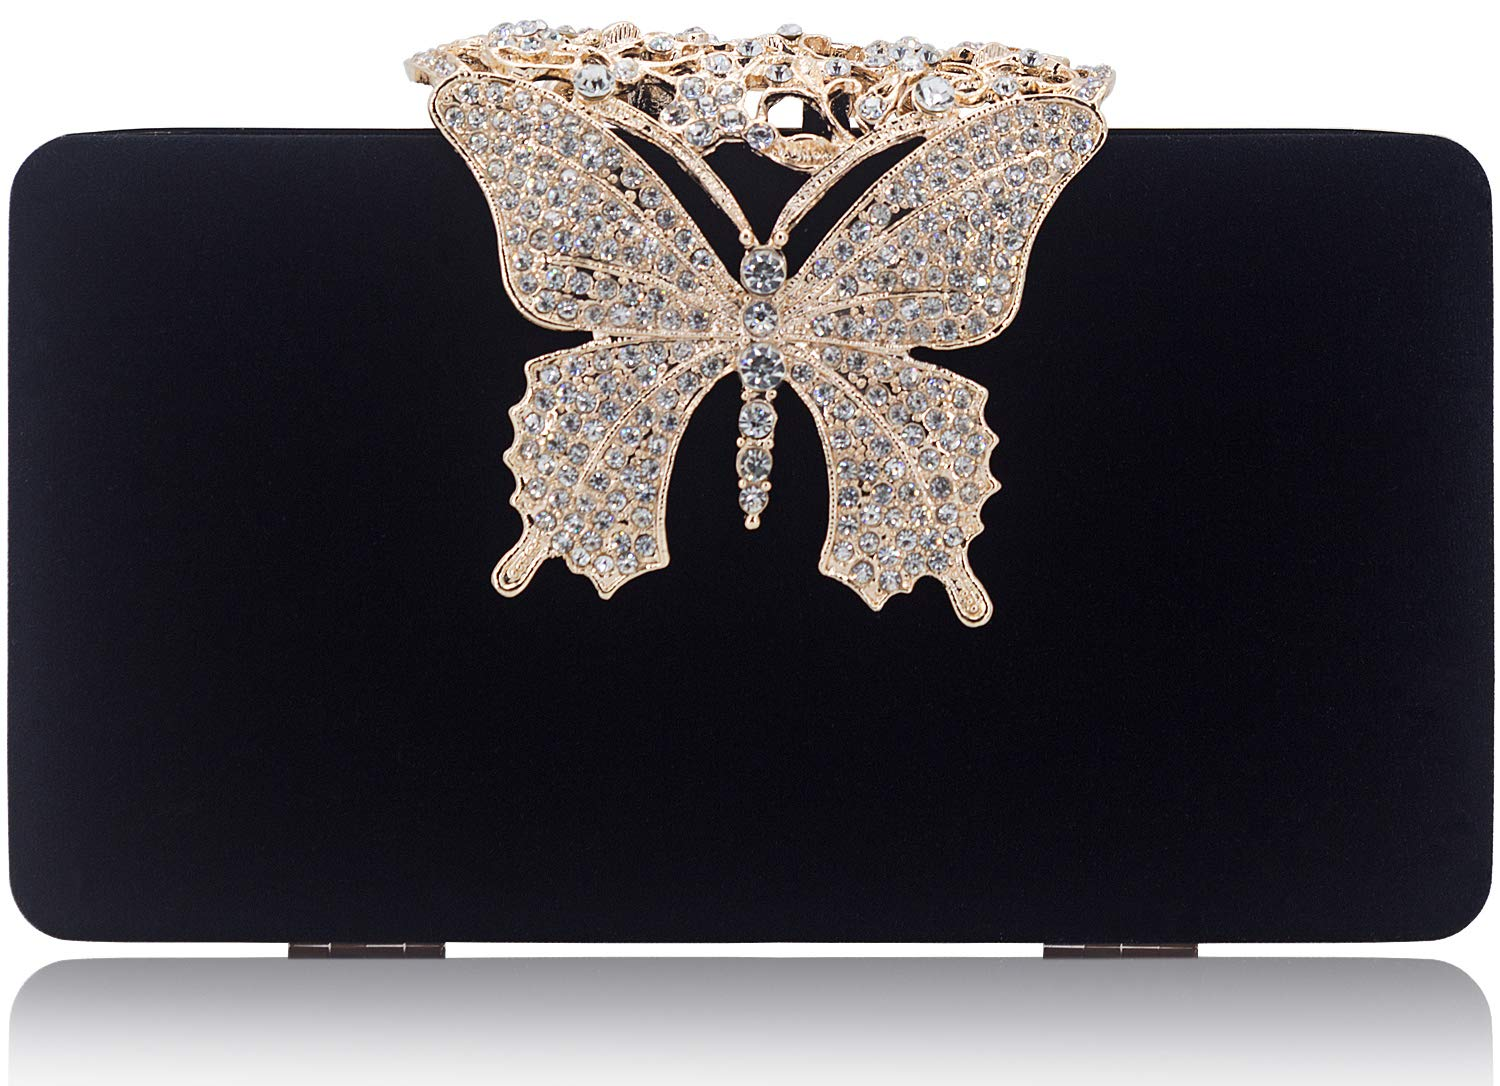 Dexmay Unique Velvet Clutch with Rhinestone Crystal Butterfly Clasp Women Evening Bag for Formal Party Black